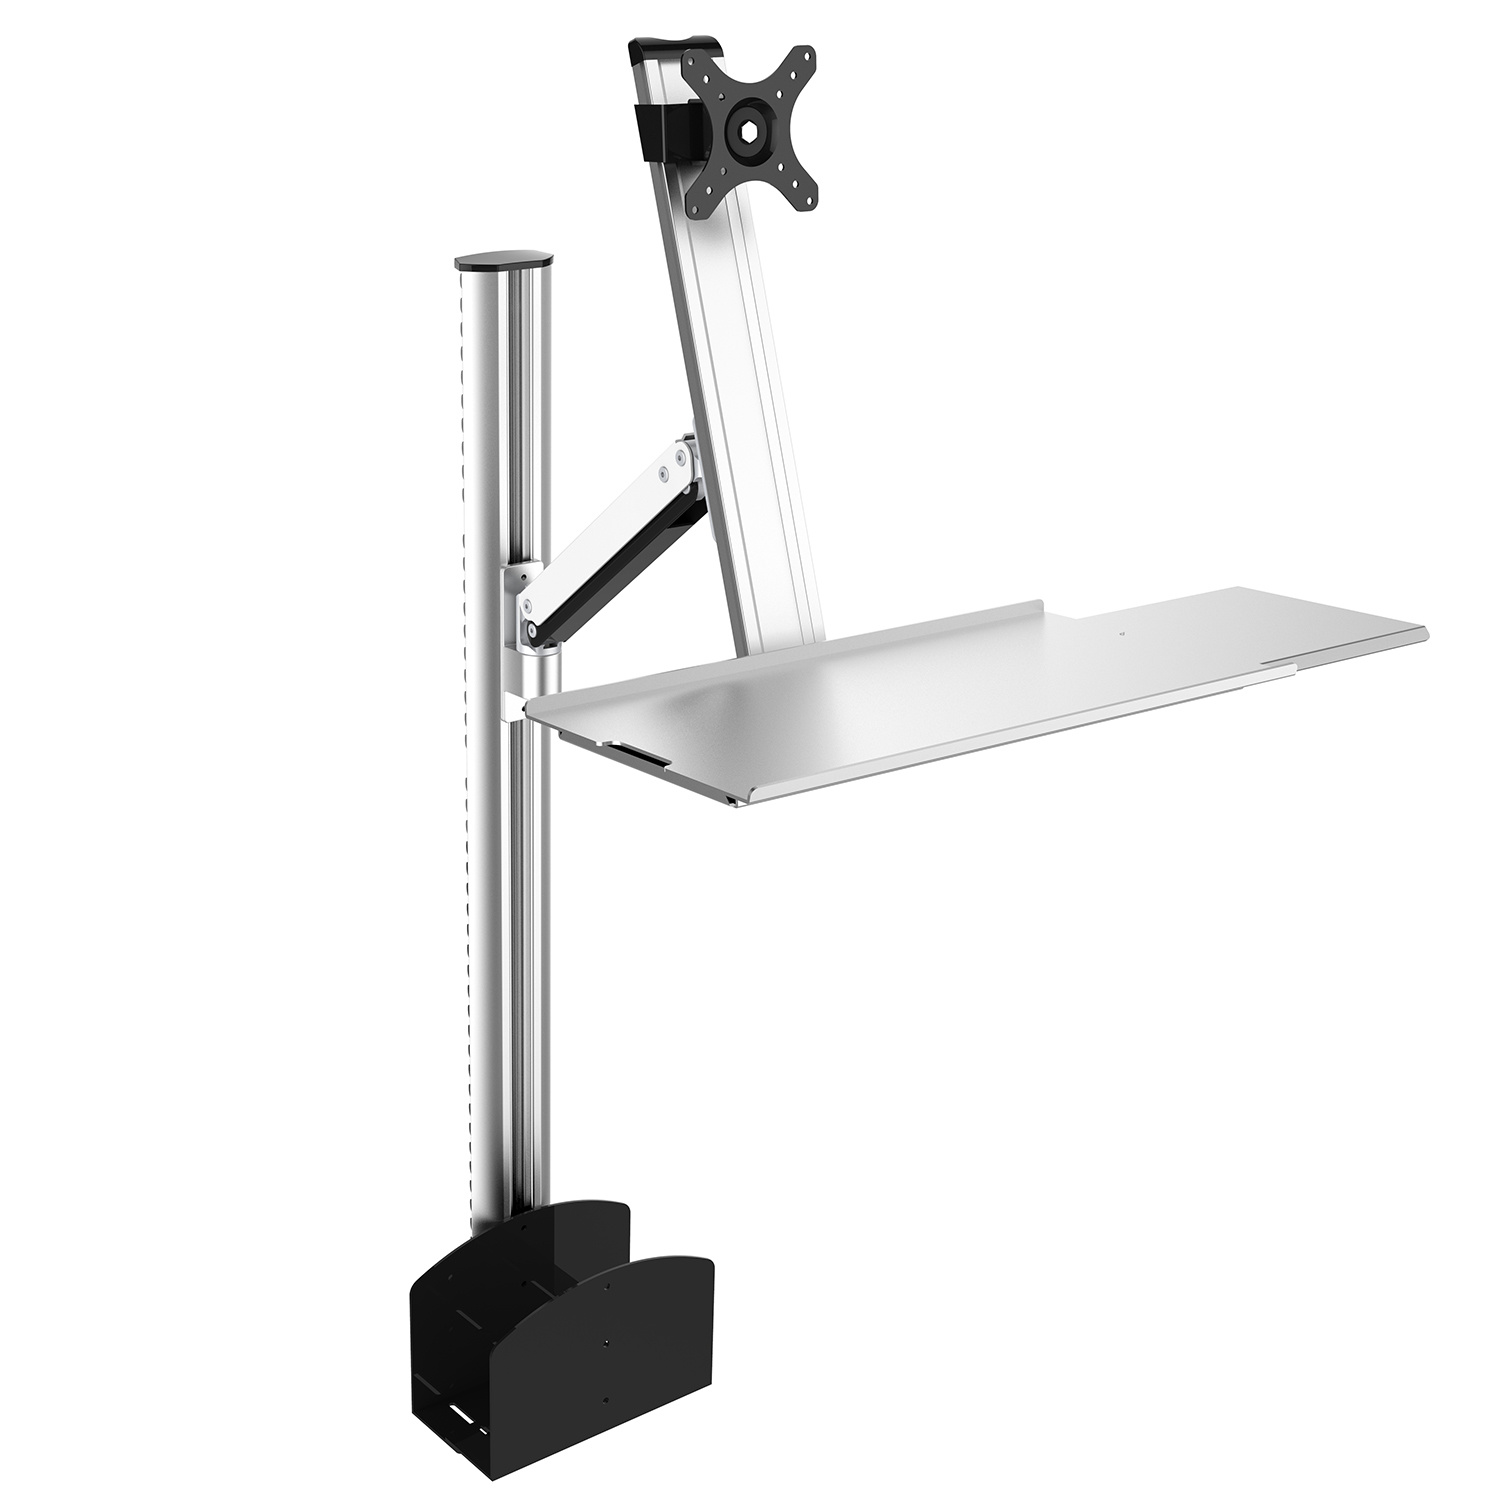 Height Adjustable Desktop Mount with Keyboard and Mouse Tray